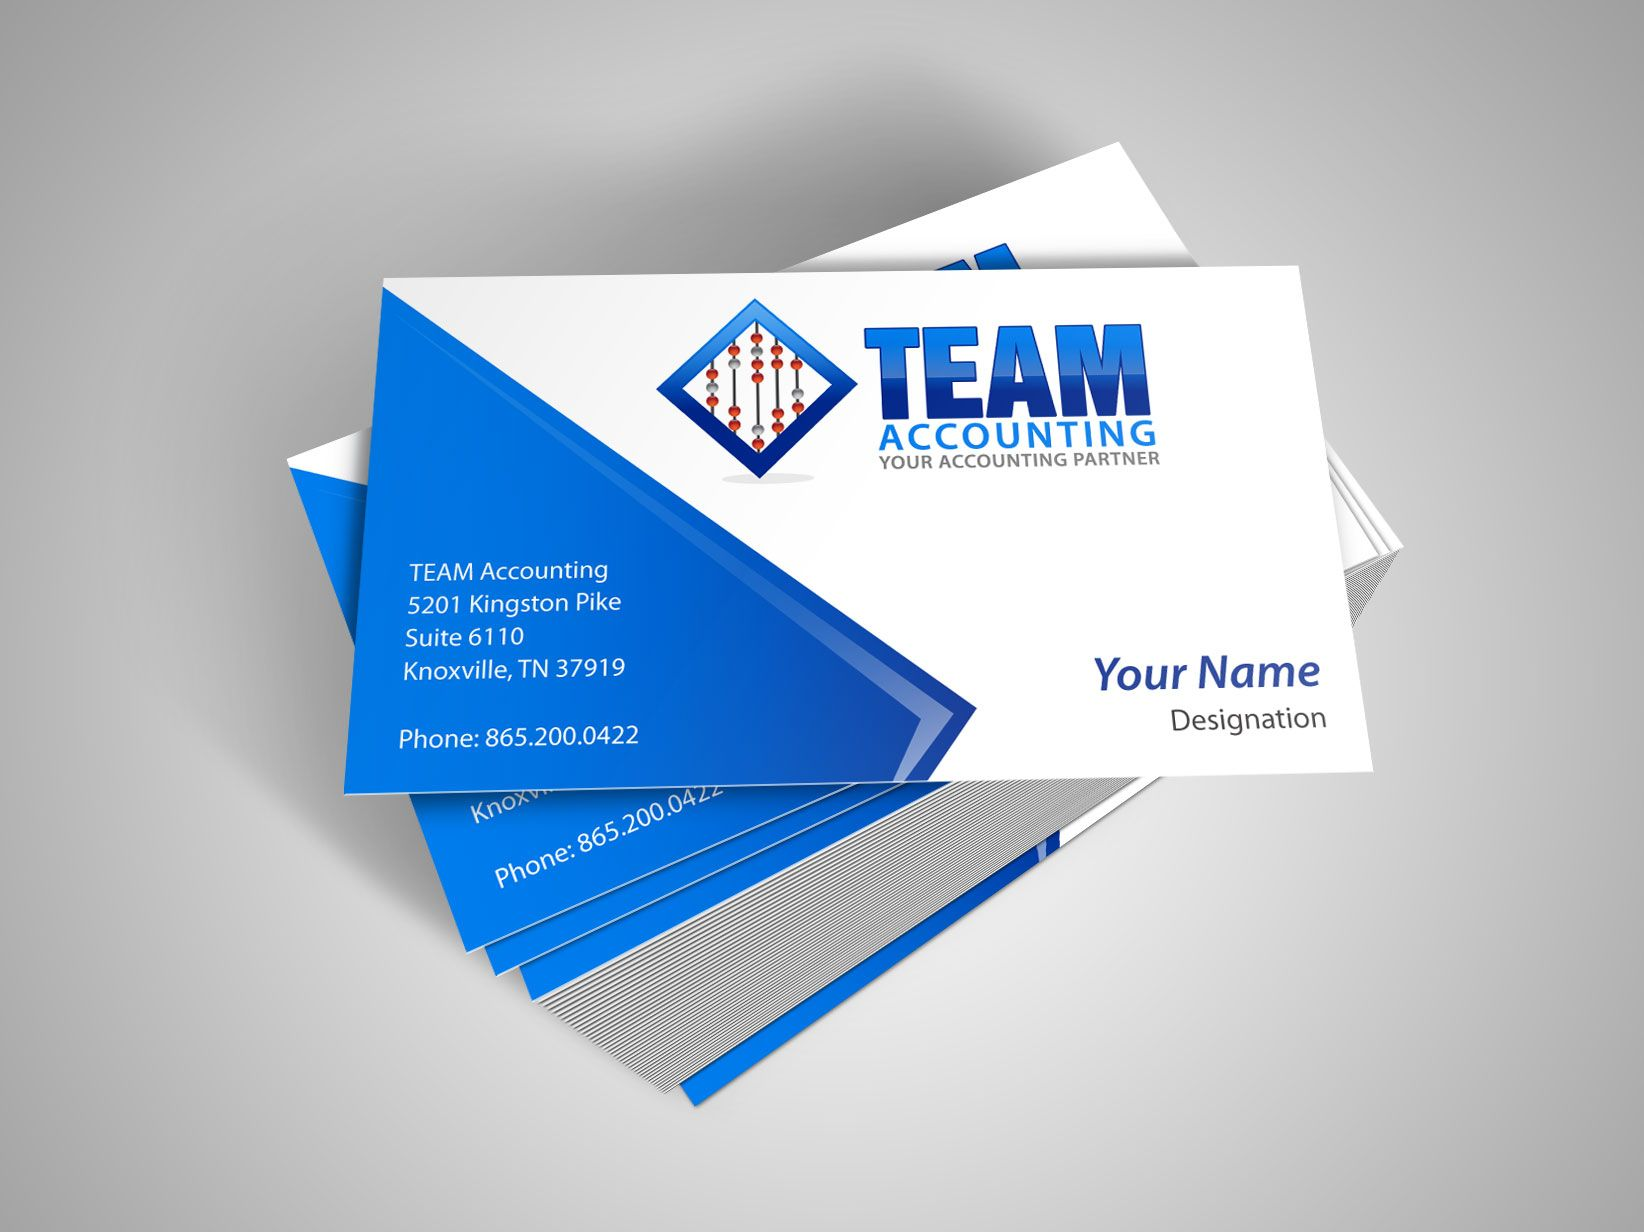 Business Cards Knoxville Tennessee Images - Card Design And Card ...